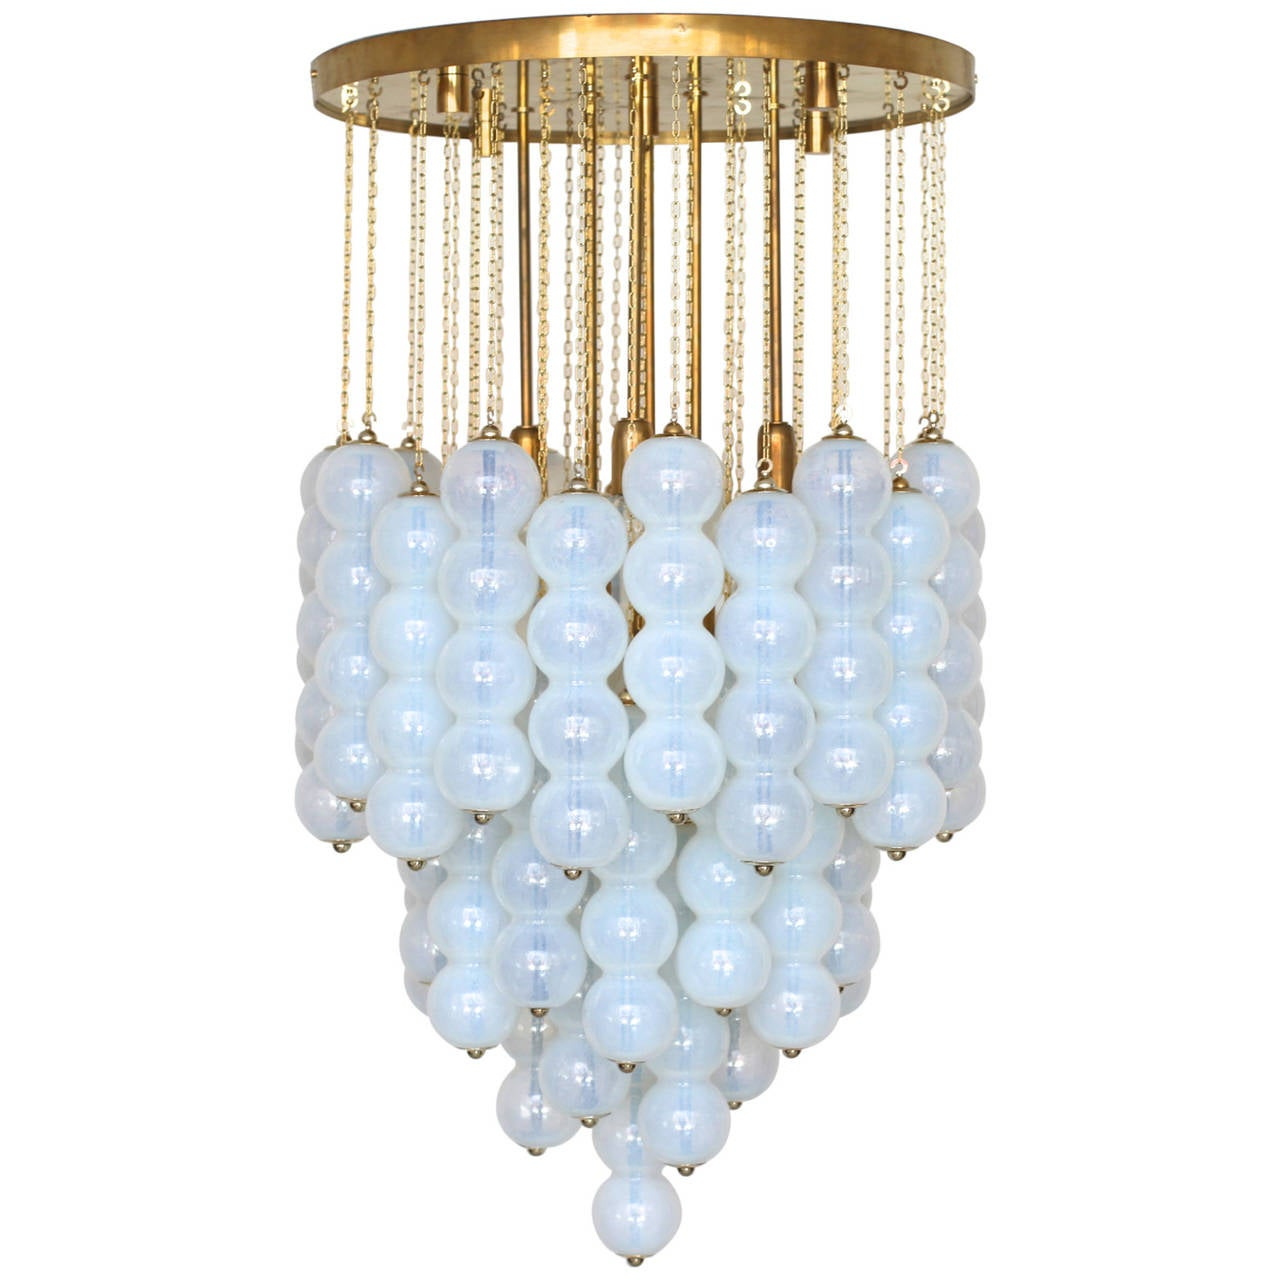 Very Huge Opaline Murano Glass Balls and Brass Chandelier by Zero Quattro Milan